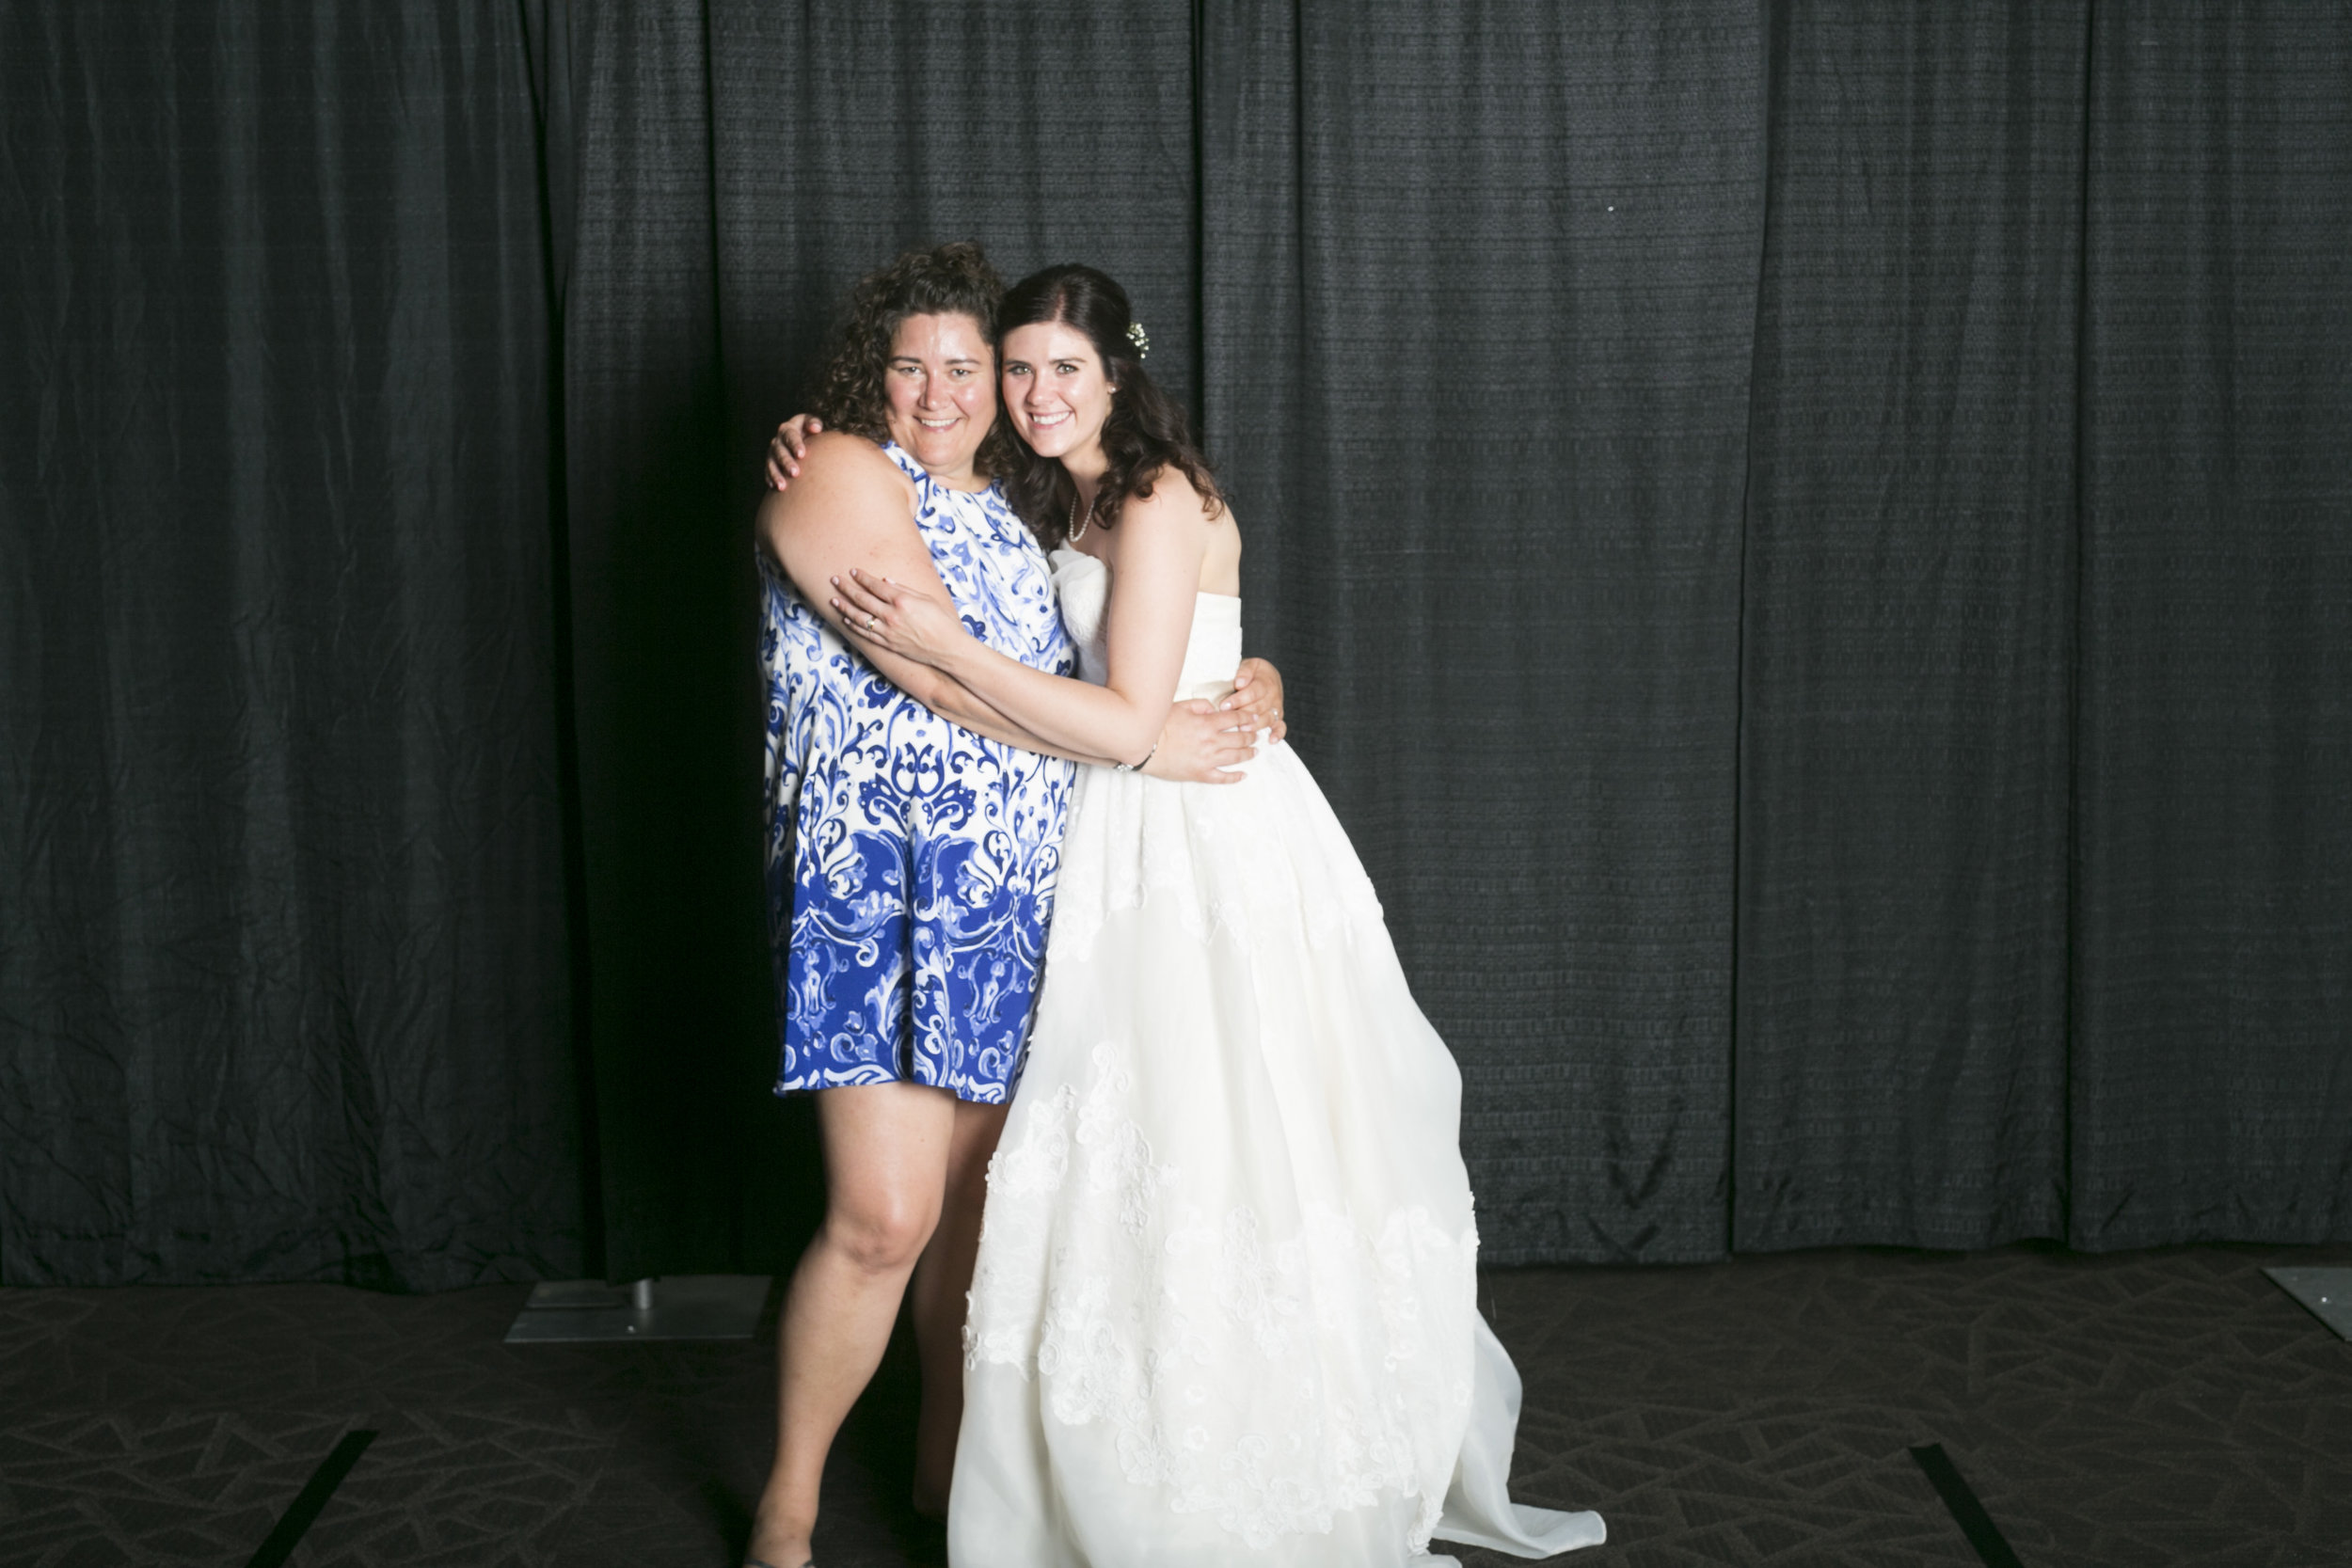 wedding photo booth-61.jpg